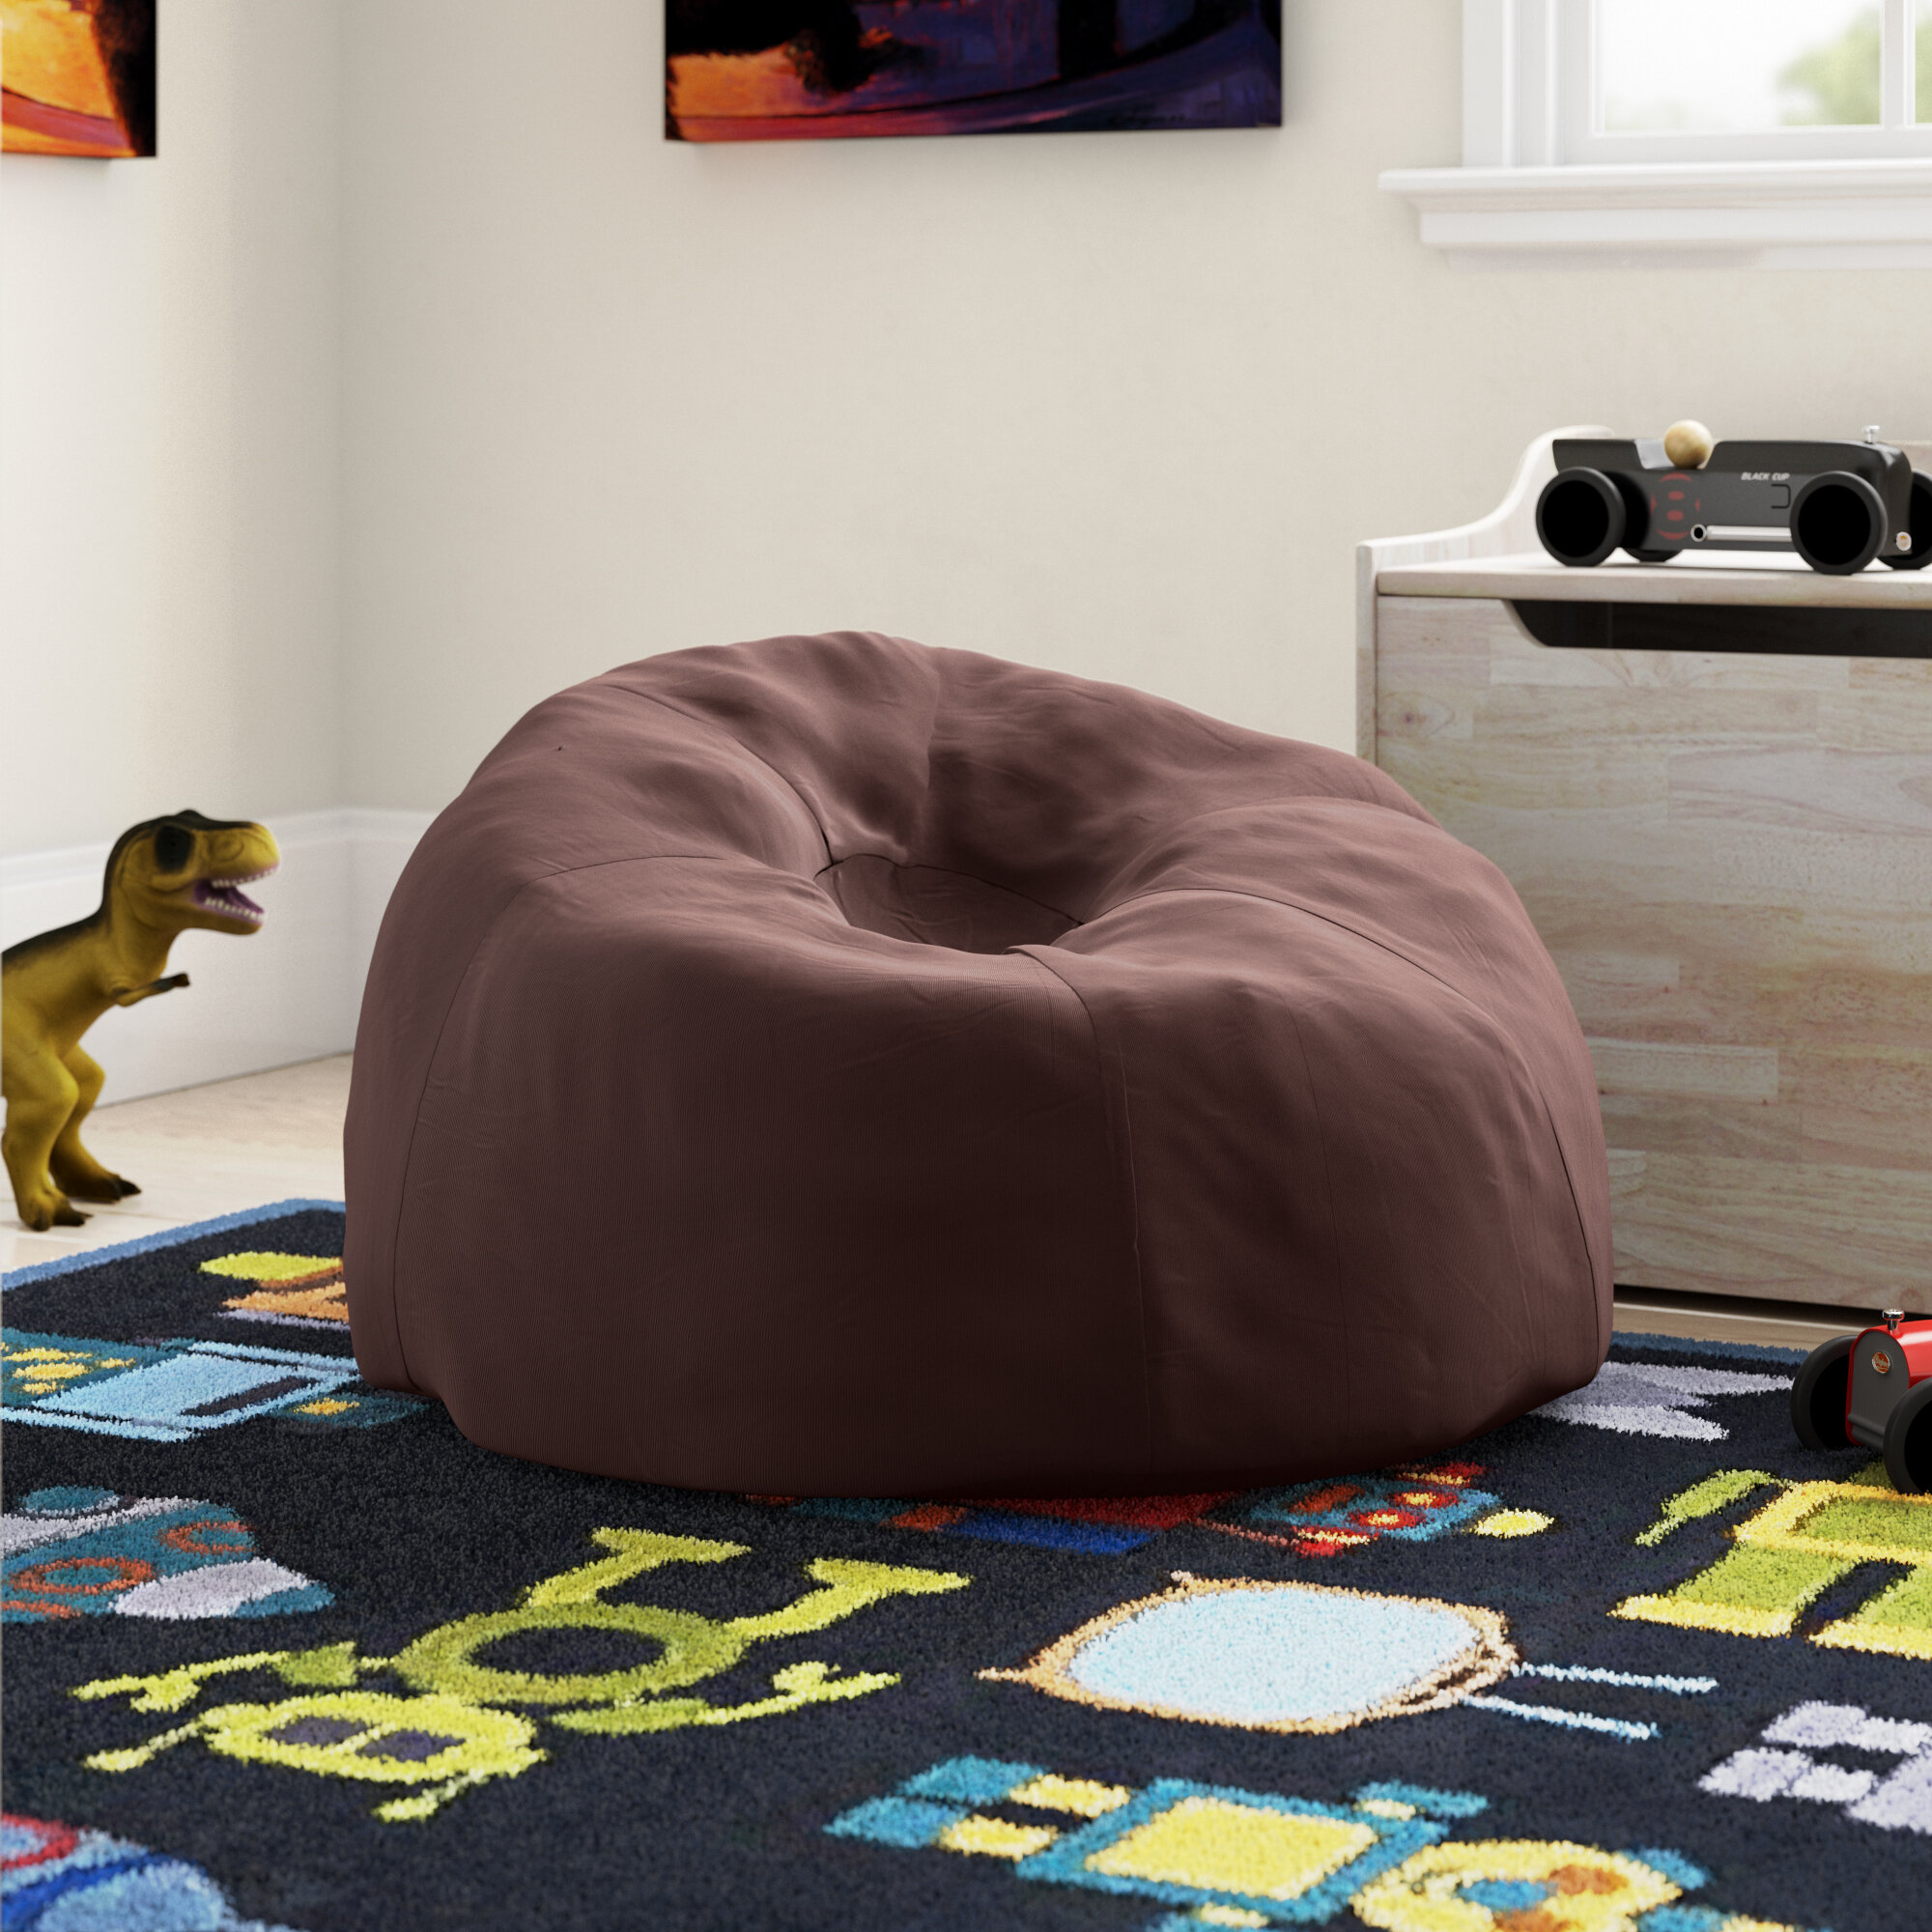 Magnificent Beads Small Bean Bag Chair Andrewgaddart Wooden Chair Designs For Living Room Andrewgaddartcom